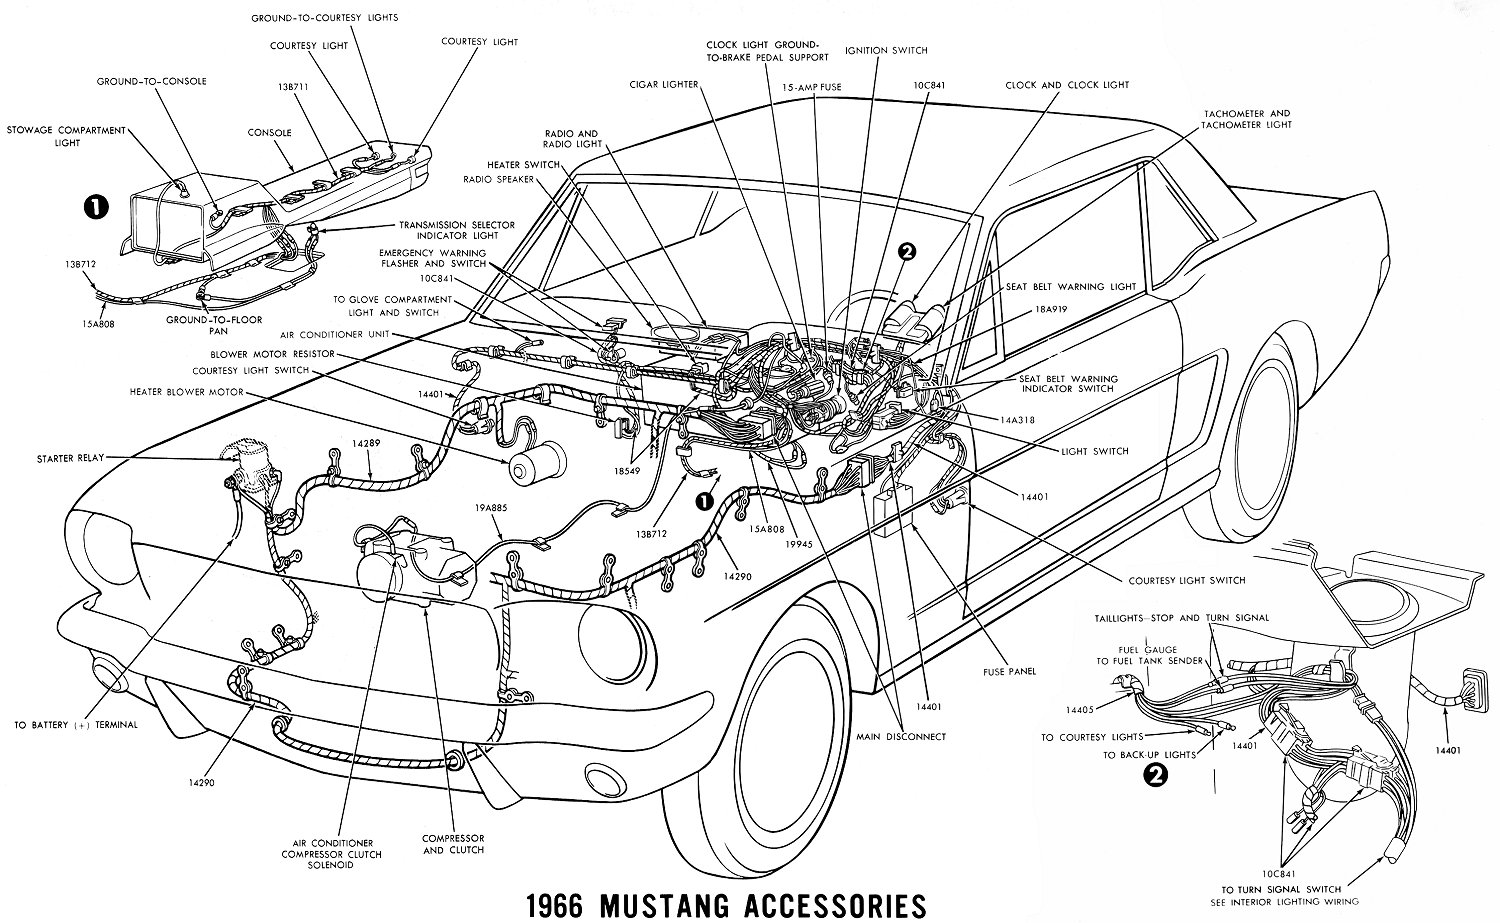 66acces vintage mustang wiring diagrams 1967 mustang instrument cluster wiring diagram at readyjetset.co